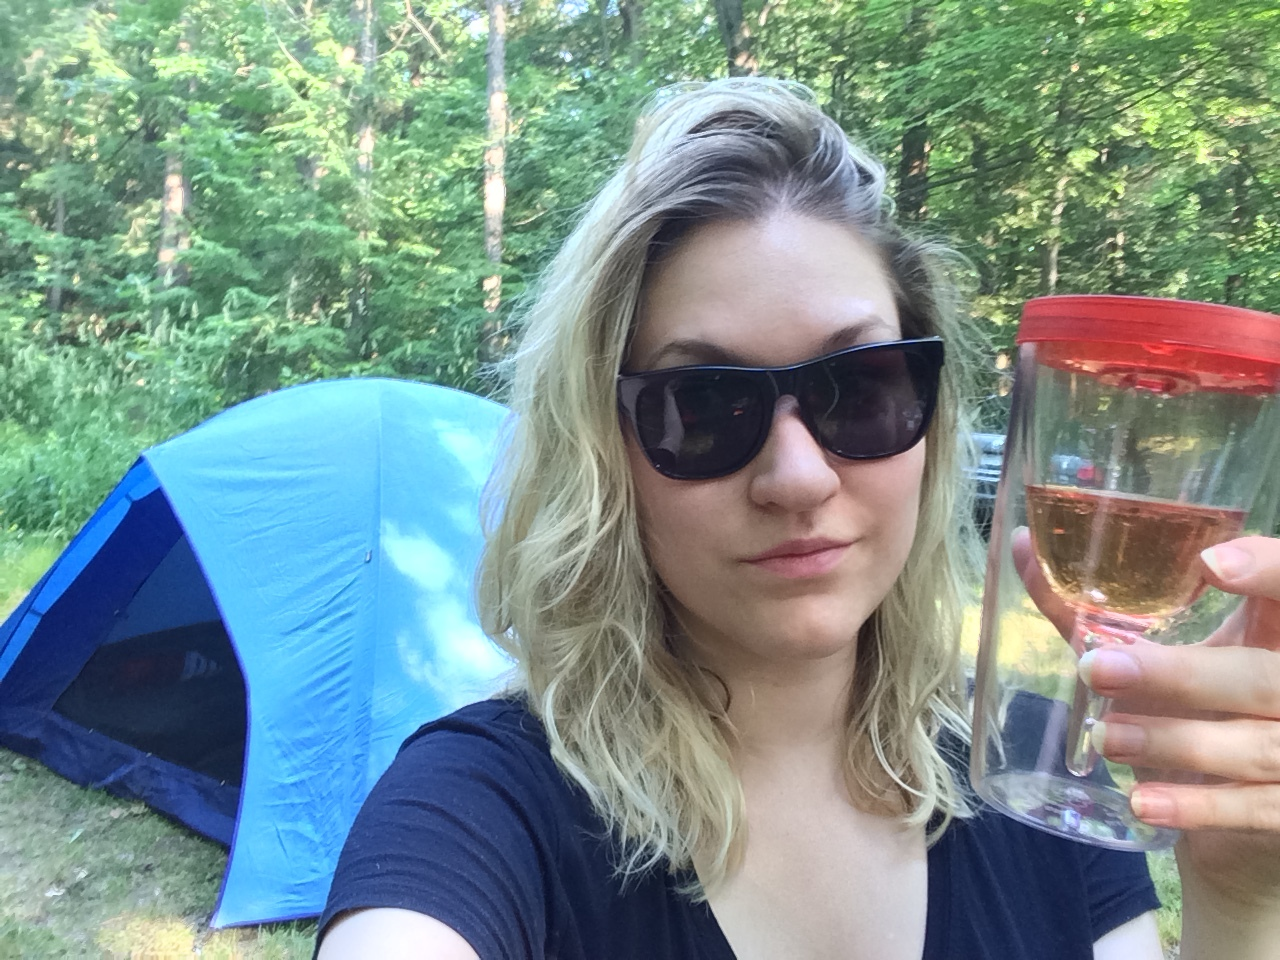 Photographic proof that I was actually camping and yes, my plastic wine cup is amazing.